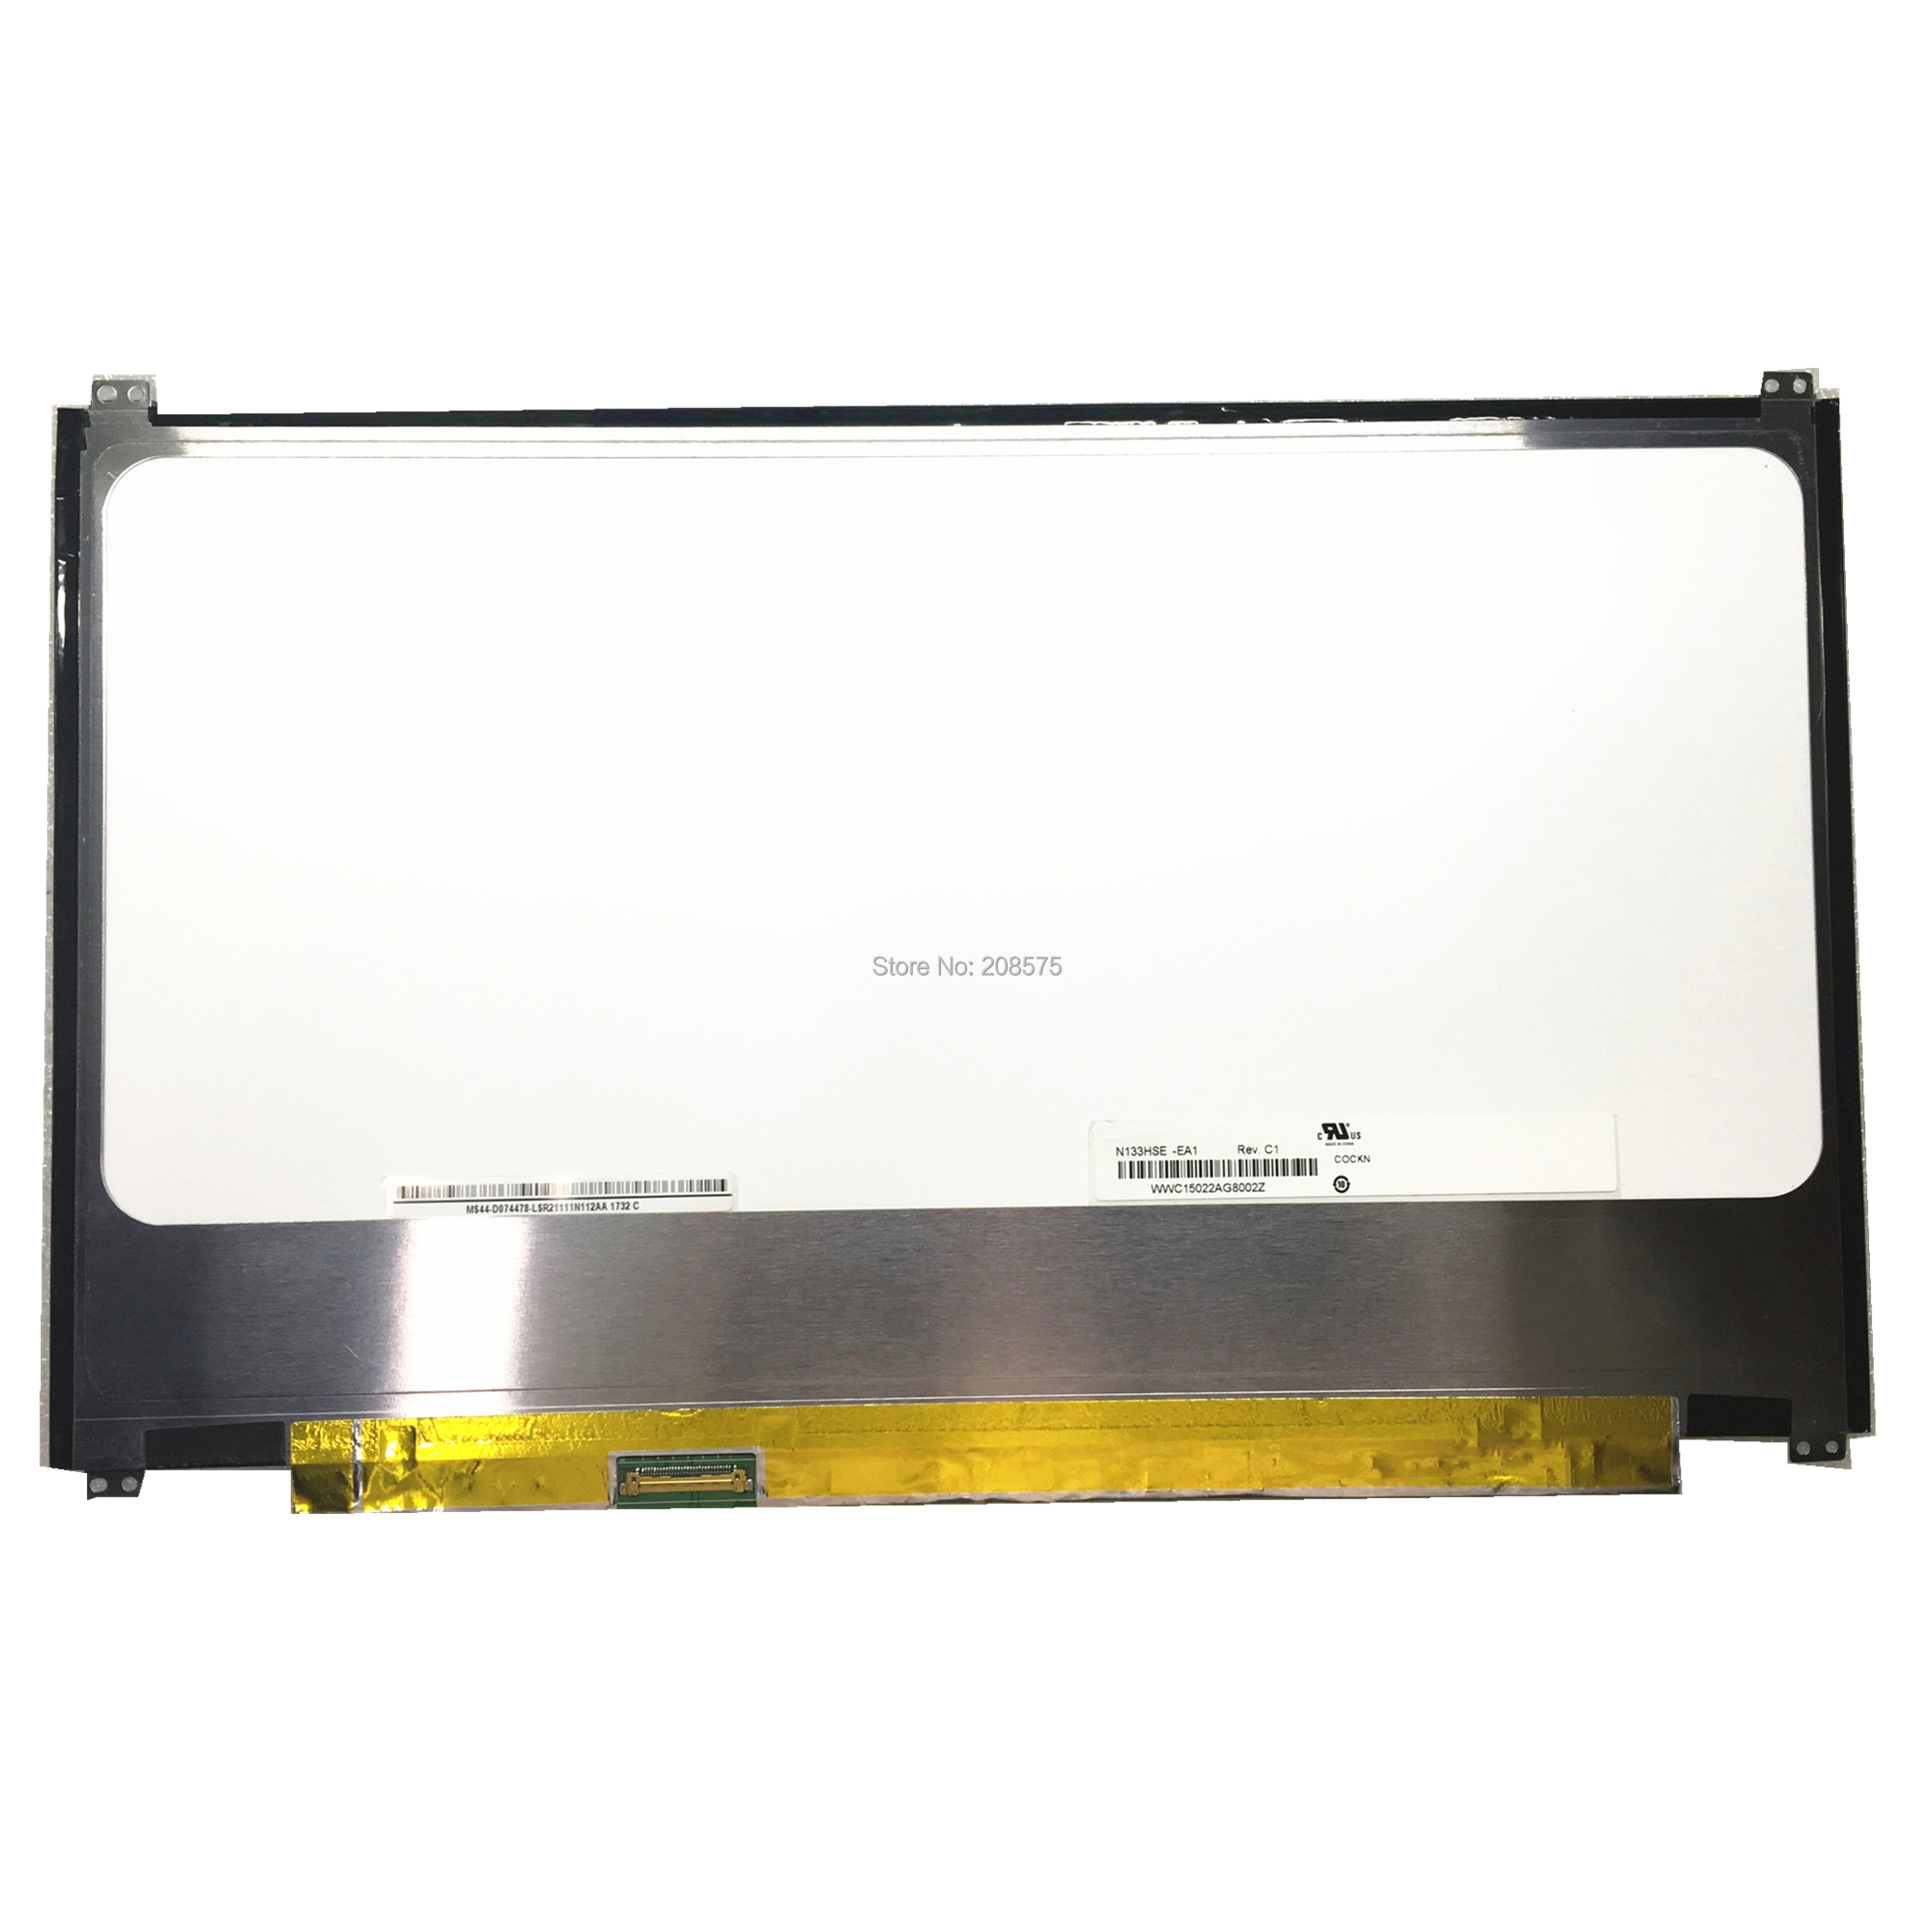 Free shipping N133HSE EA1 N133HSE EA3 for ASUS UX32 UX32VD UX31 UX31A UltraBook Laptop LCD LED